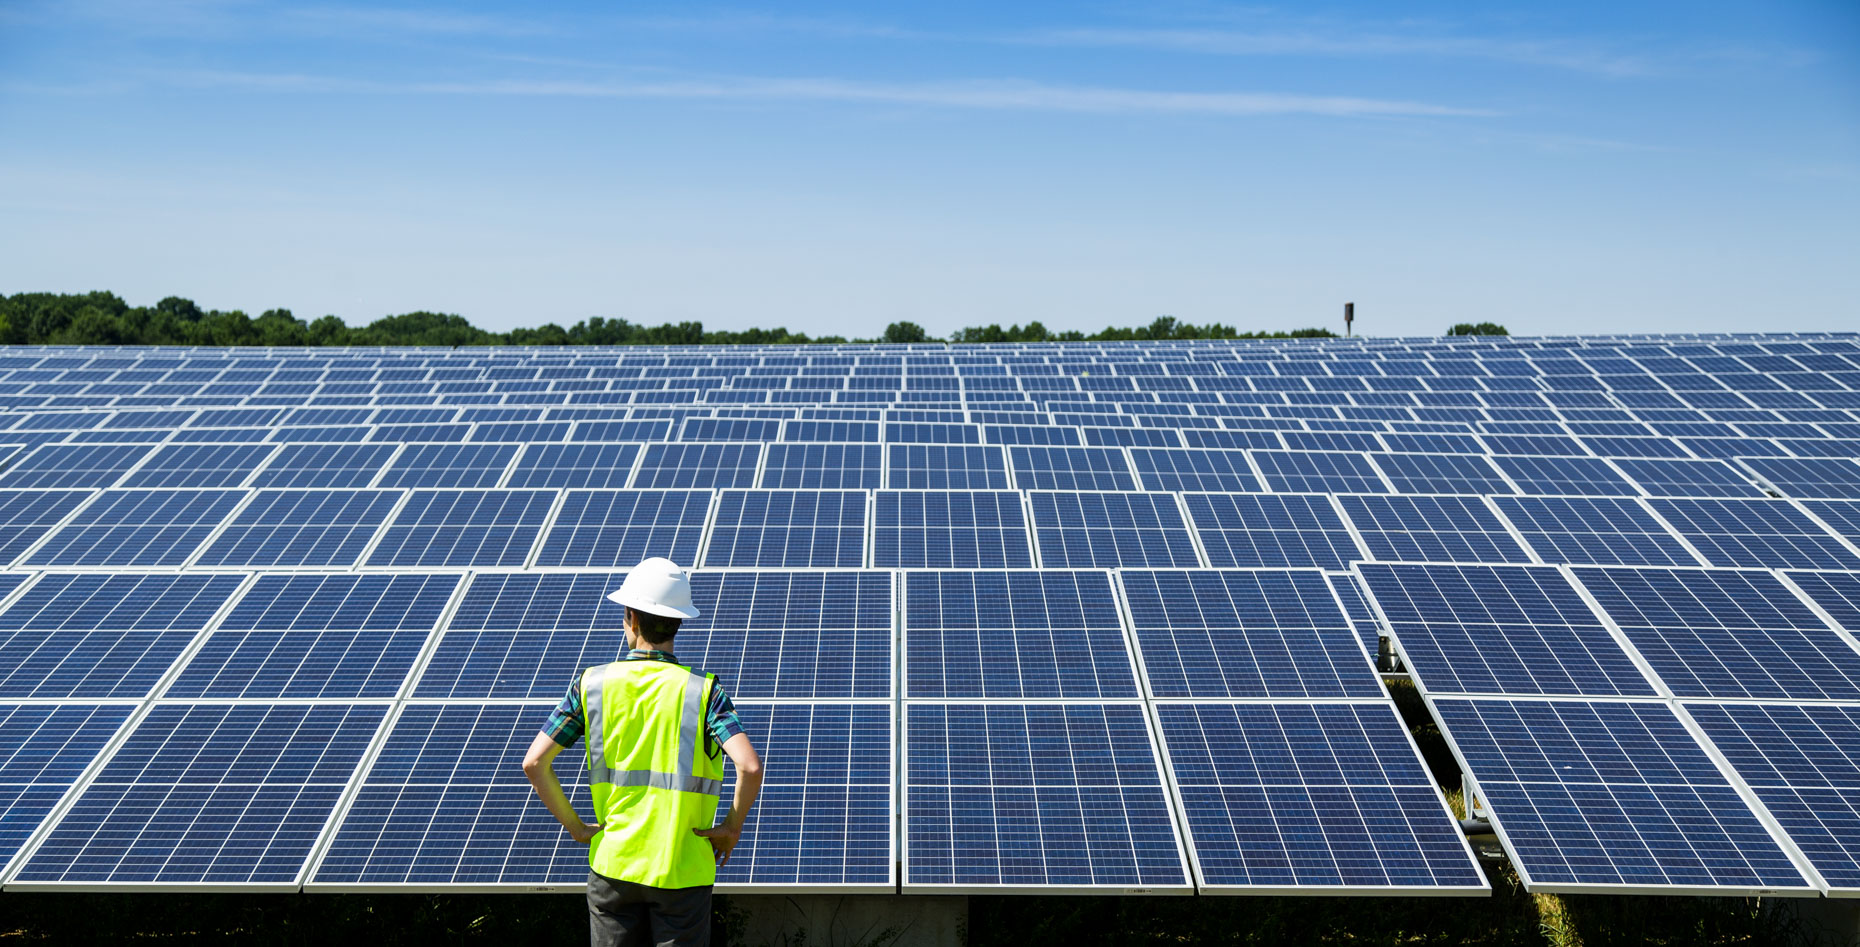 A worker surveys solar panels at a solar energy company in the United States.